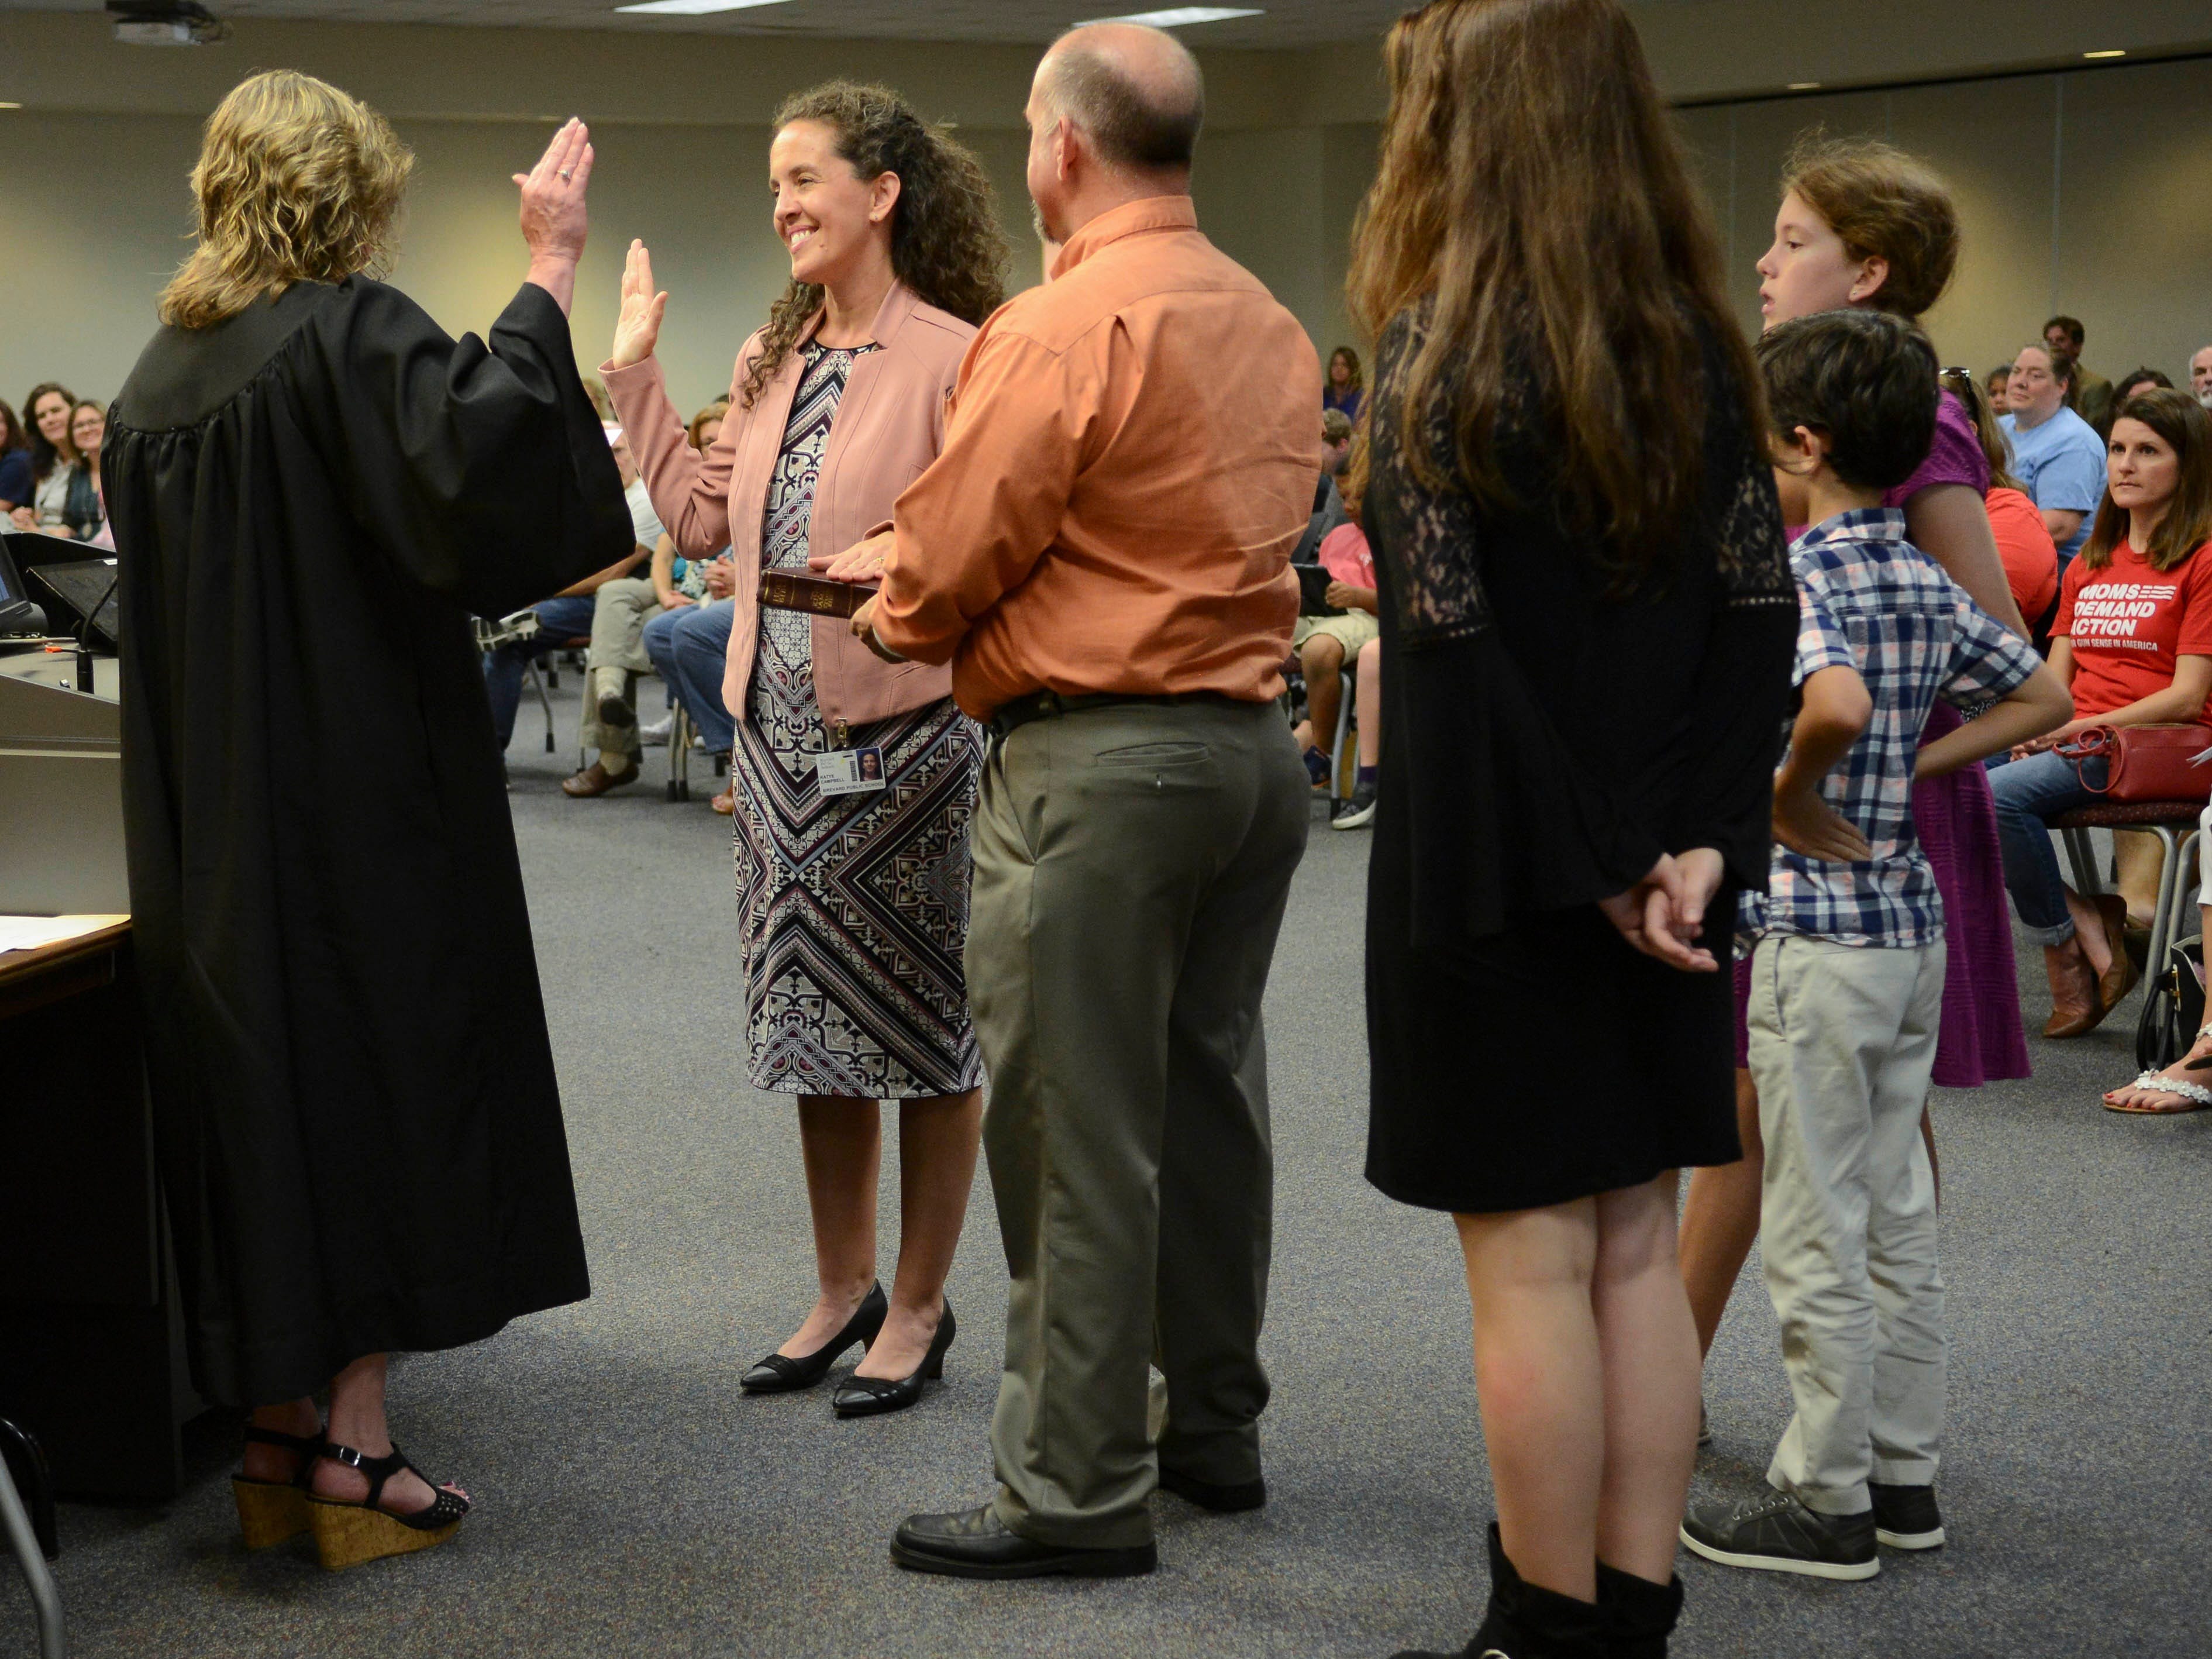 As family members watch, Judge Kelly McKibben swears in Katye Campbell as a new member of the Brevard County School Board during Tuesday's meeting in Viera.